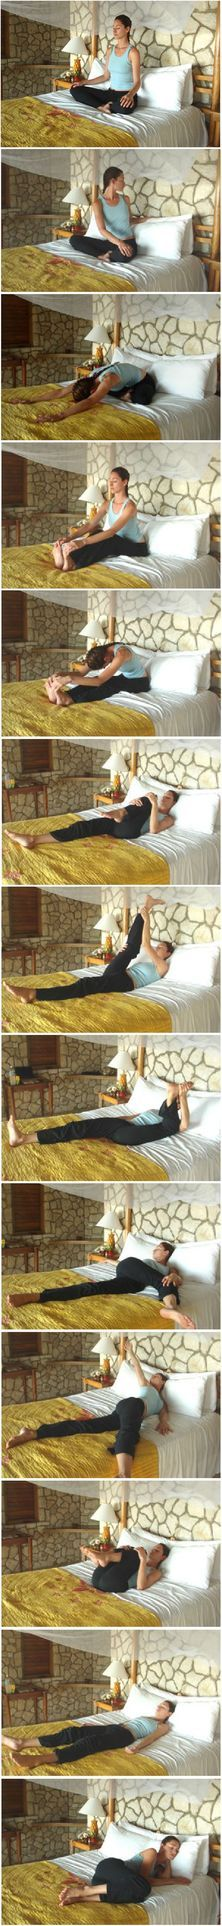 Healthy way to stay in shape physically and menatally